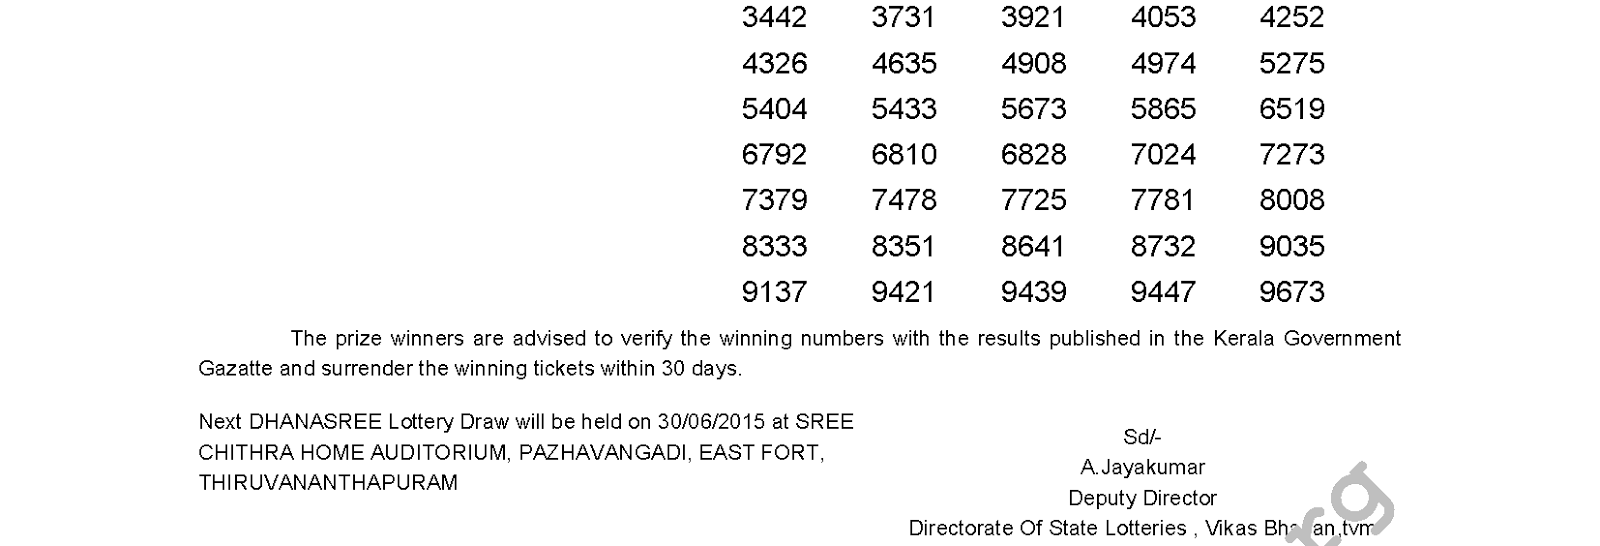 DHANASREE Lottery DS 191 Result 23-6-2015